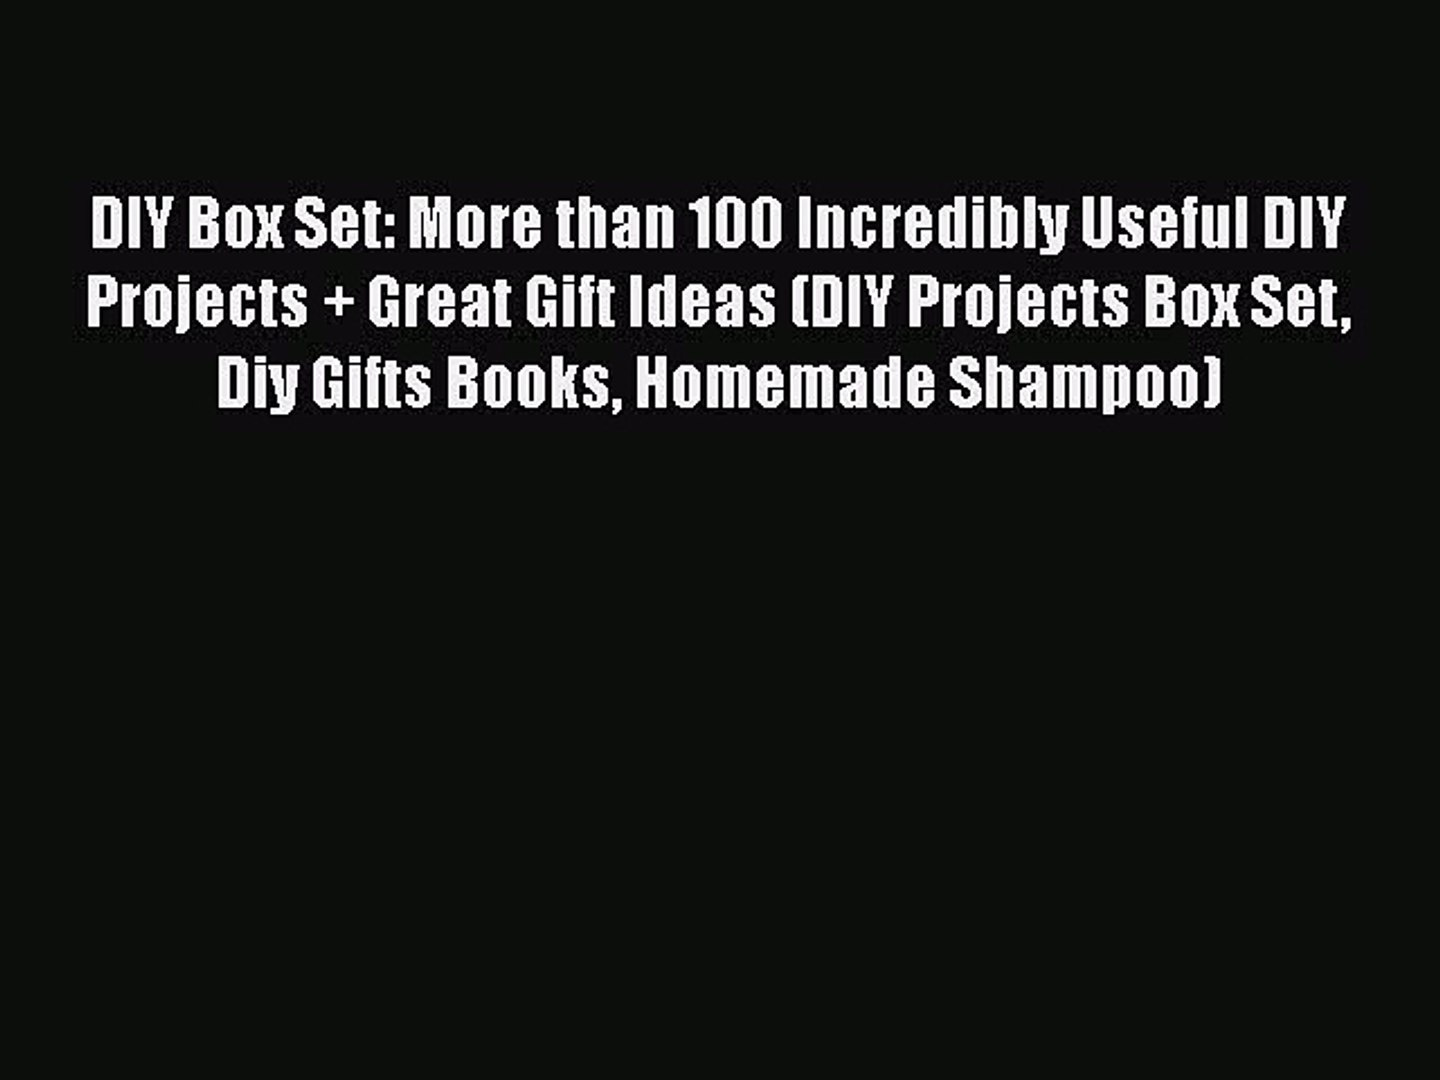 Download DIY Box Set: More than 100 Incredibly Useful DIY Projects + Great Gift Ideas (DIY